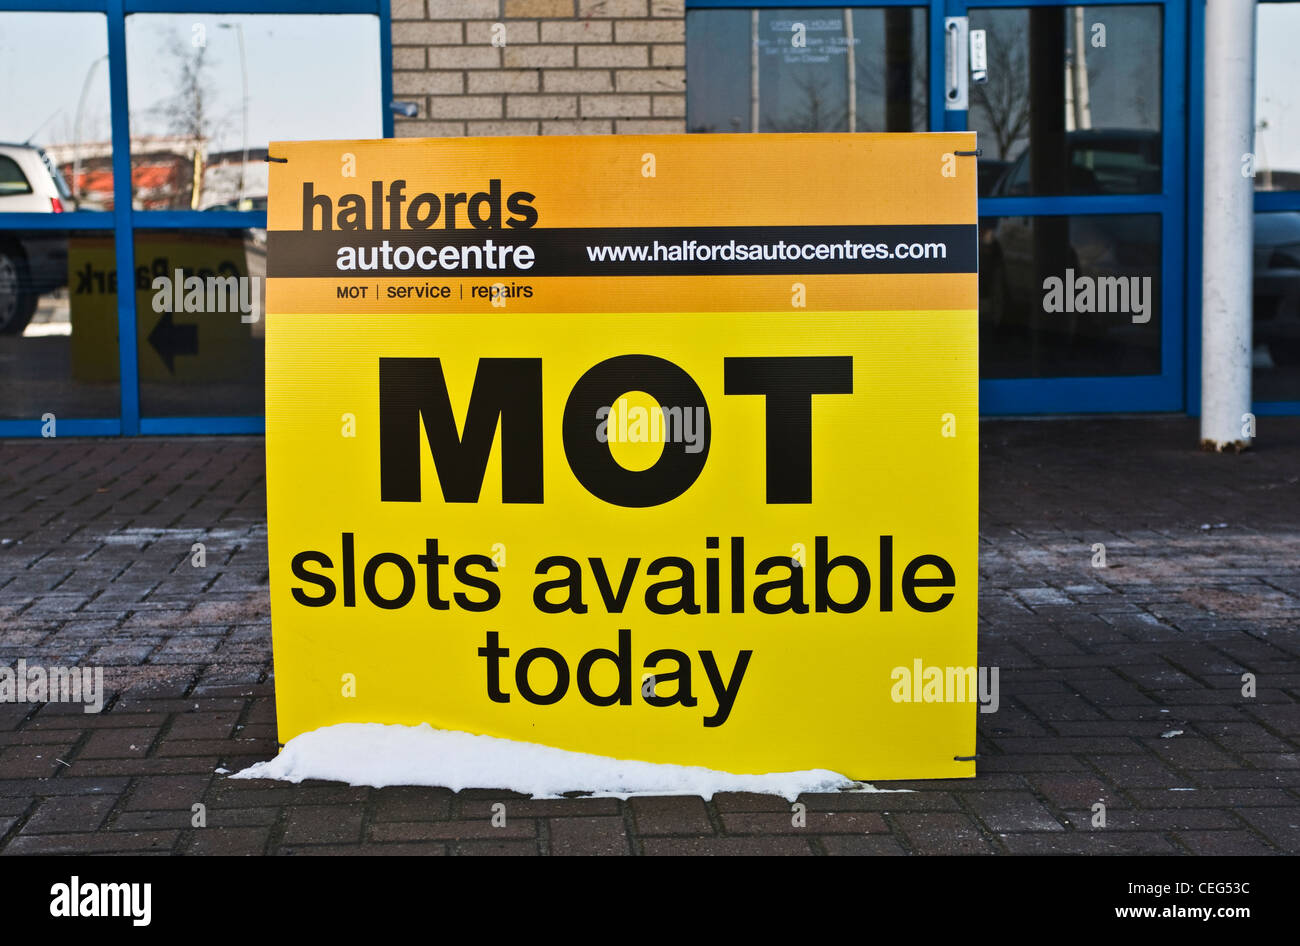 A Halfords 'MOT slots available today' sign, UK - Stock Image